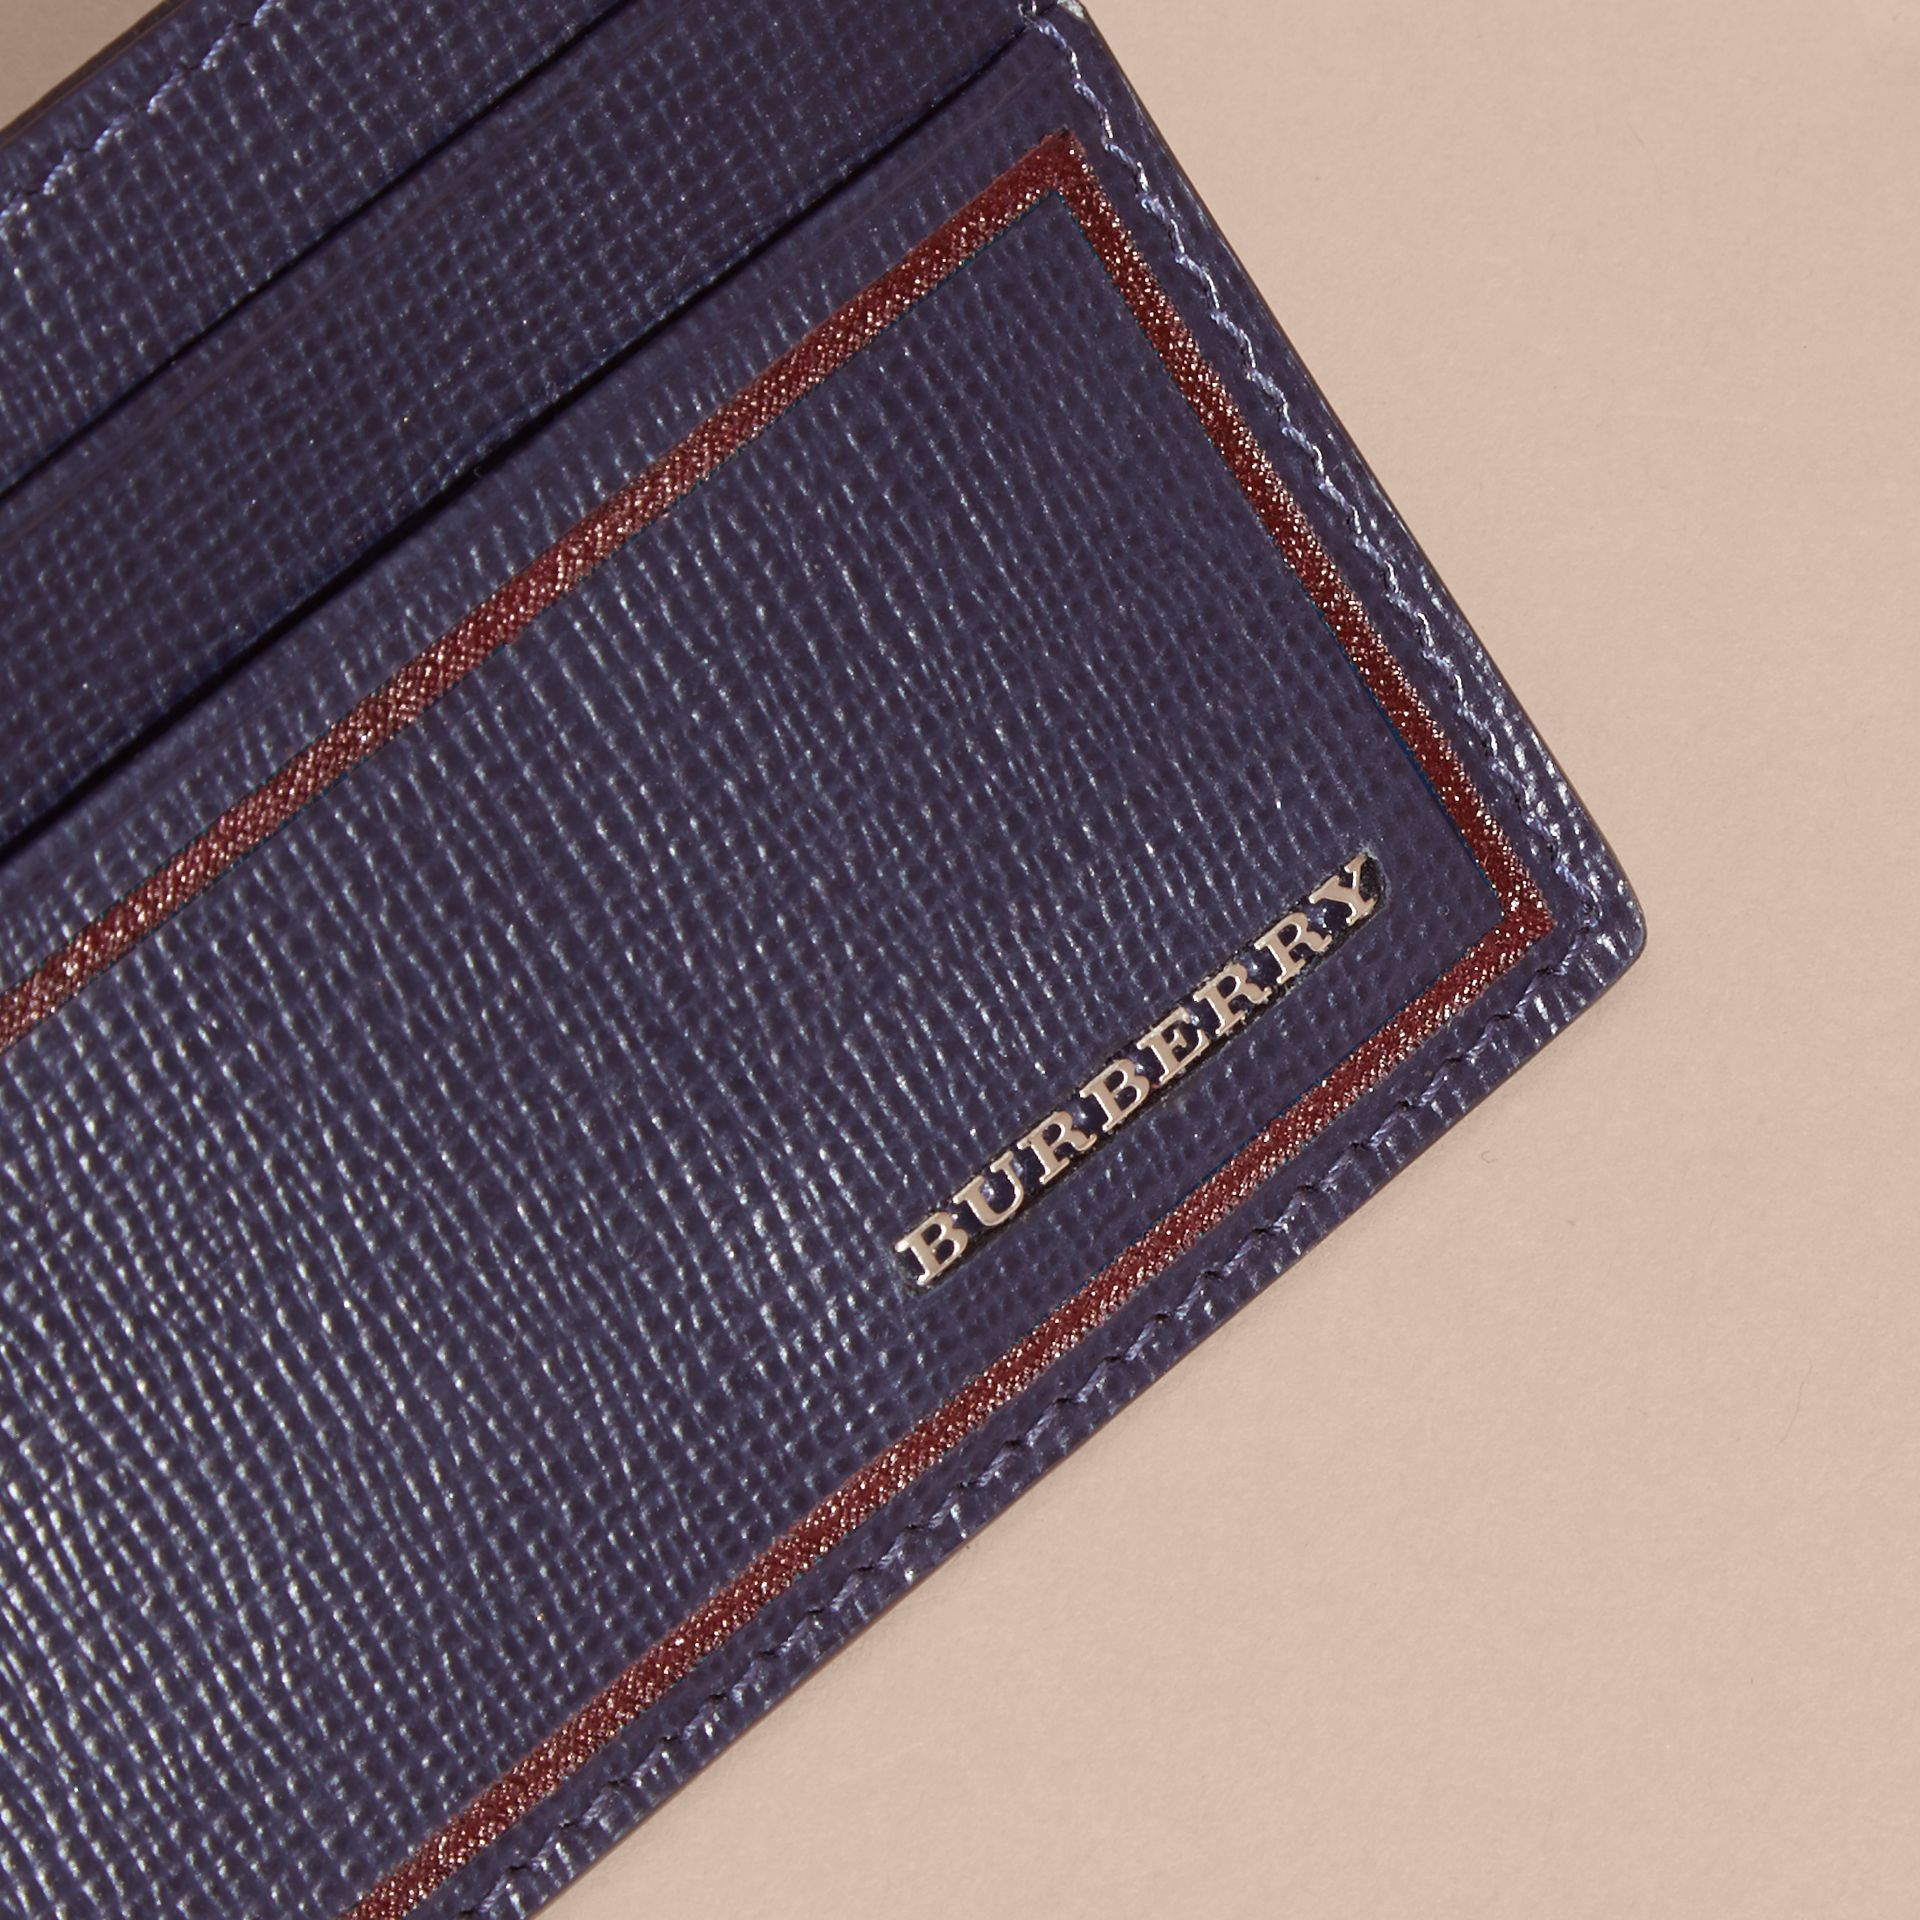 Border Detail London Leather Card Case Dark Navy - gallery image 3